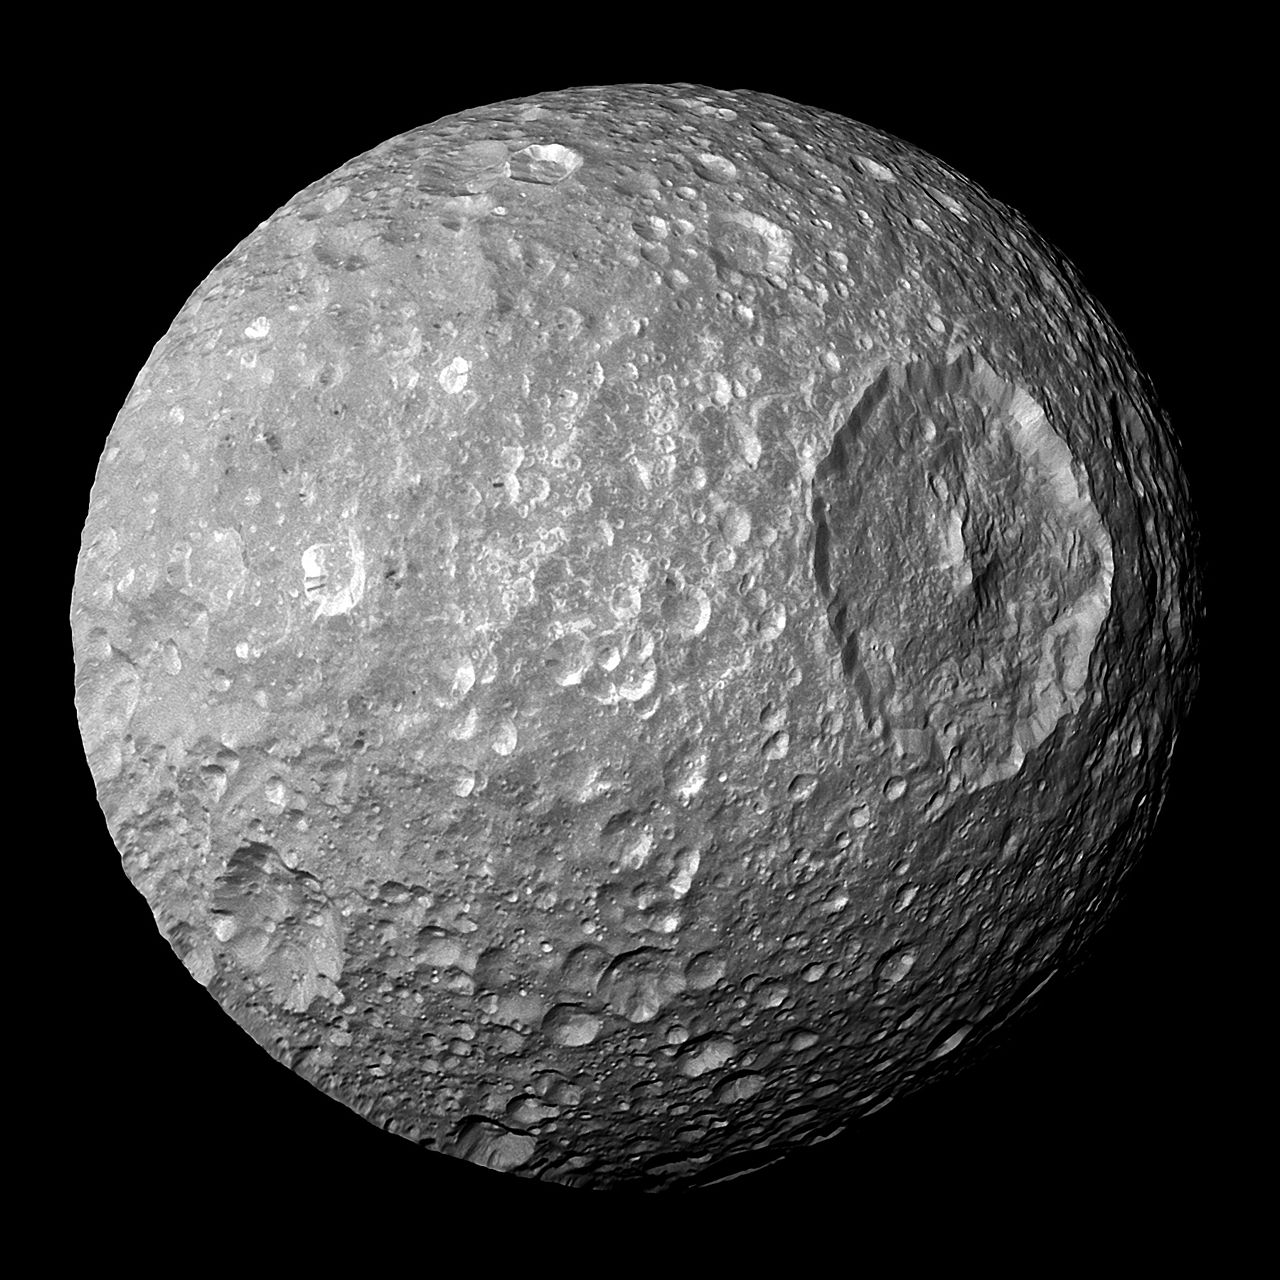 In this view captured by NASA's Cassini spacecraft on its closest-ever flyby of Saturn's moon Mimas, large Herschel Crater dominates Mimas, making the moon look like the Death Star in the movie